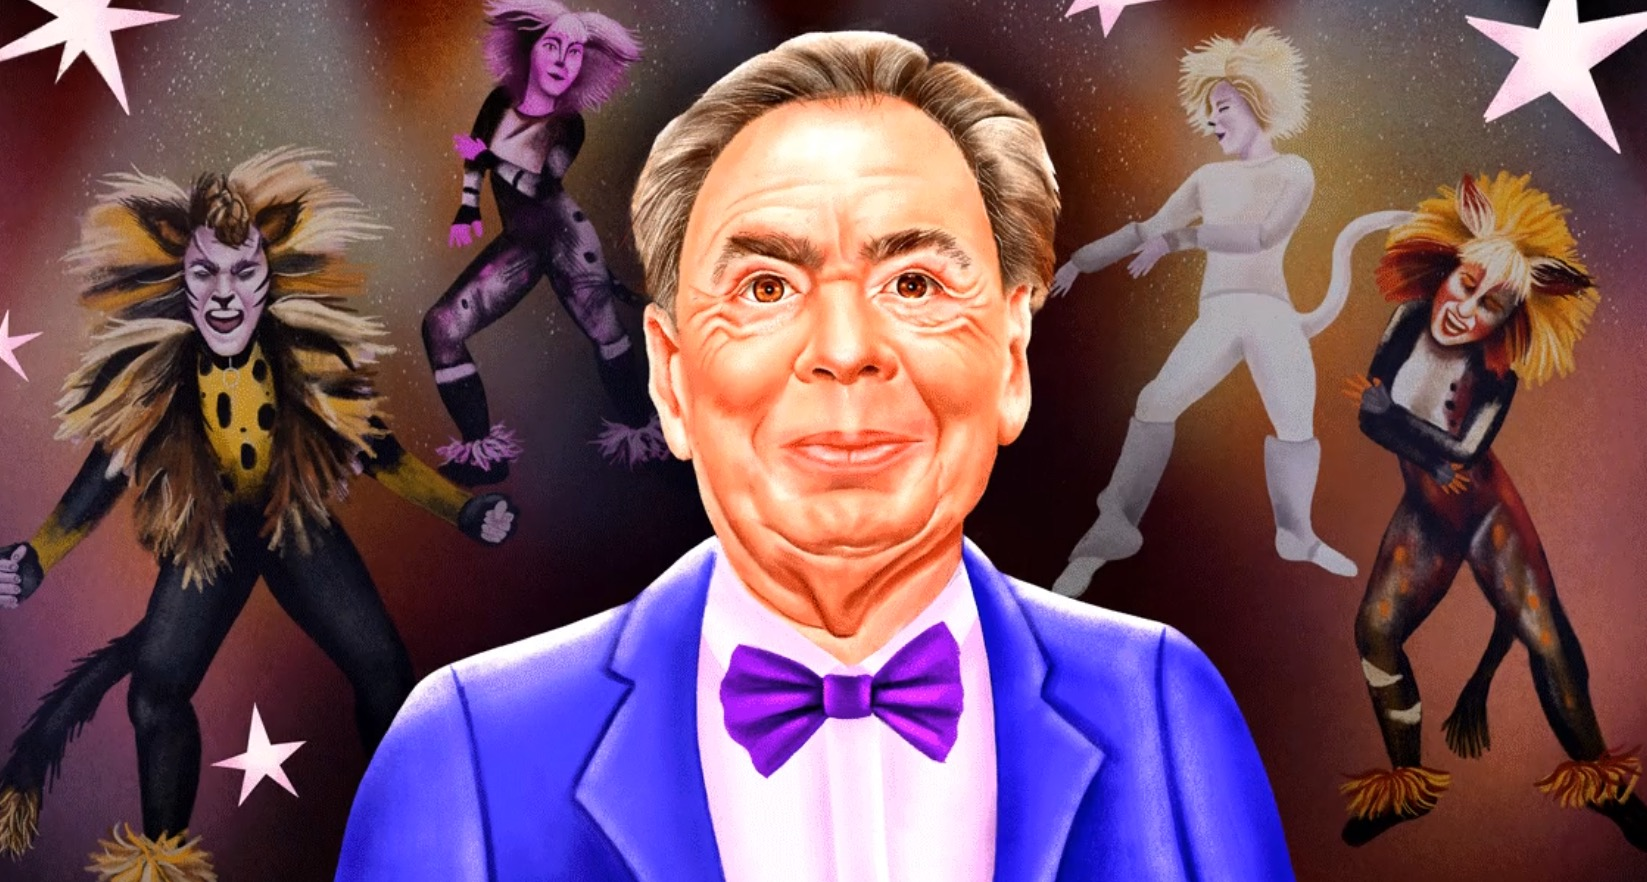 How Cats Made Andrew Lloyd Webber The King Of The Broadway Spectacle